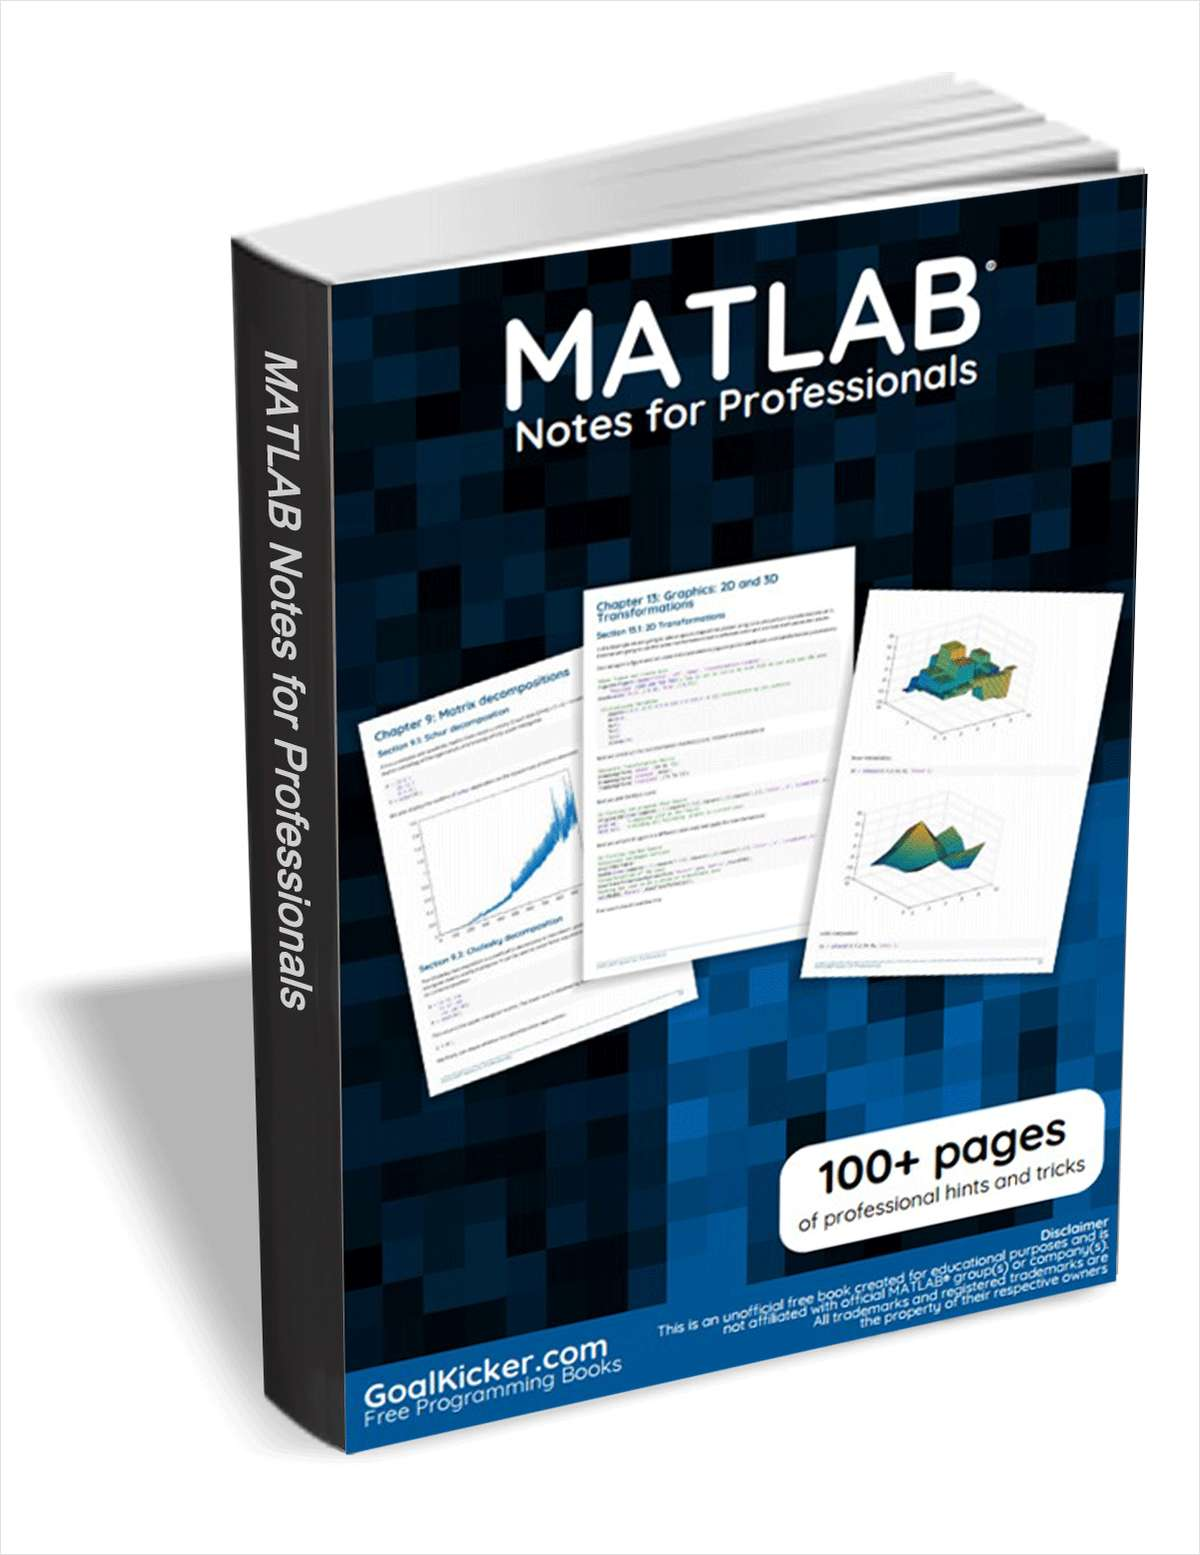 MATLAB Notes for Professionals